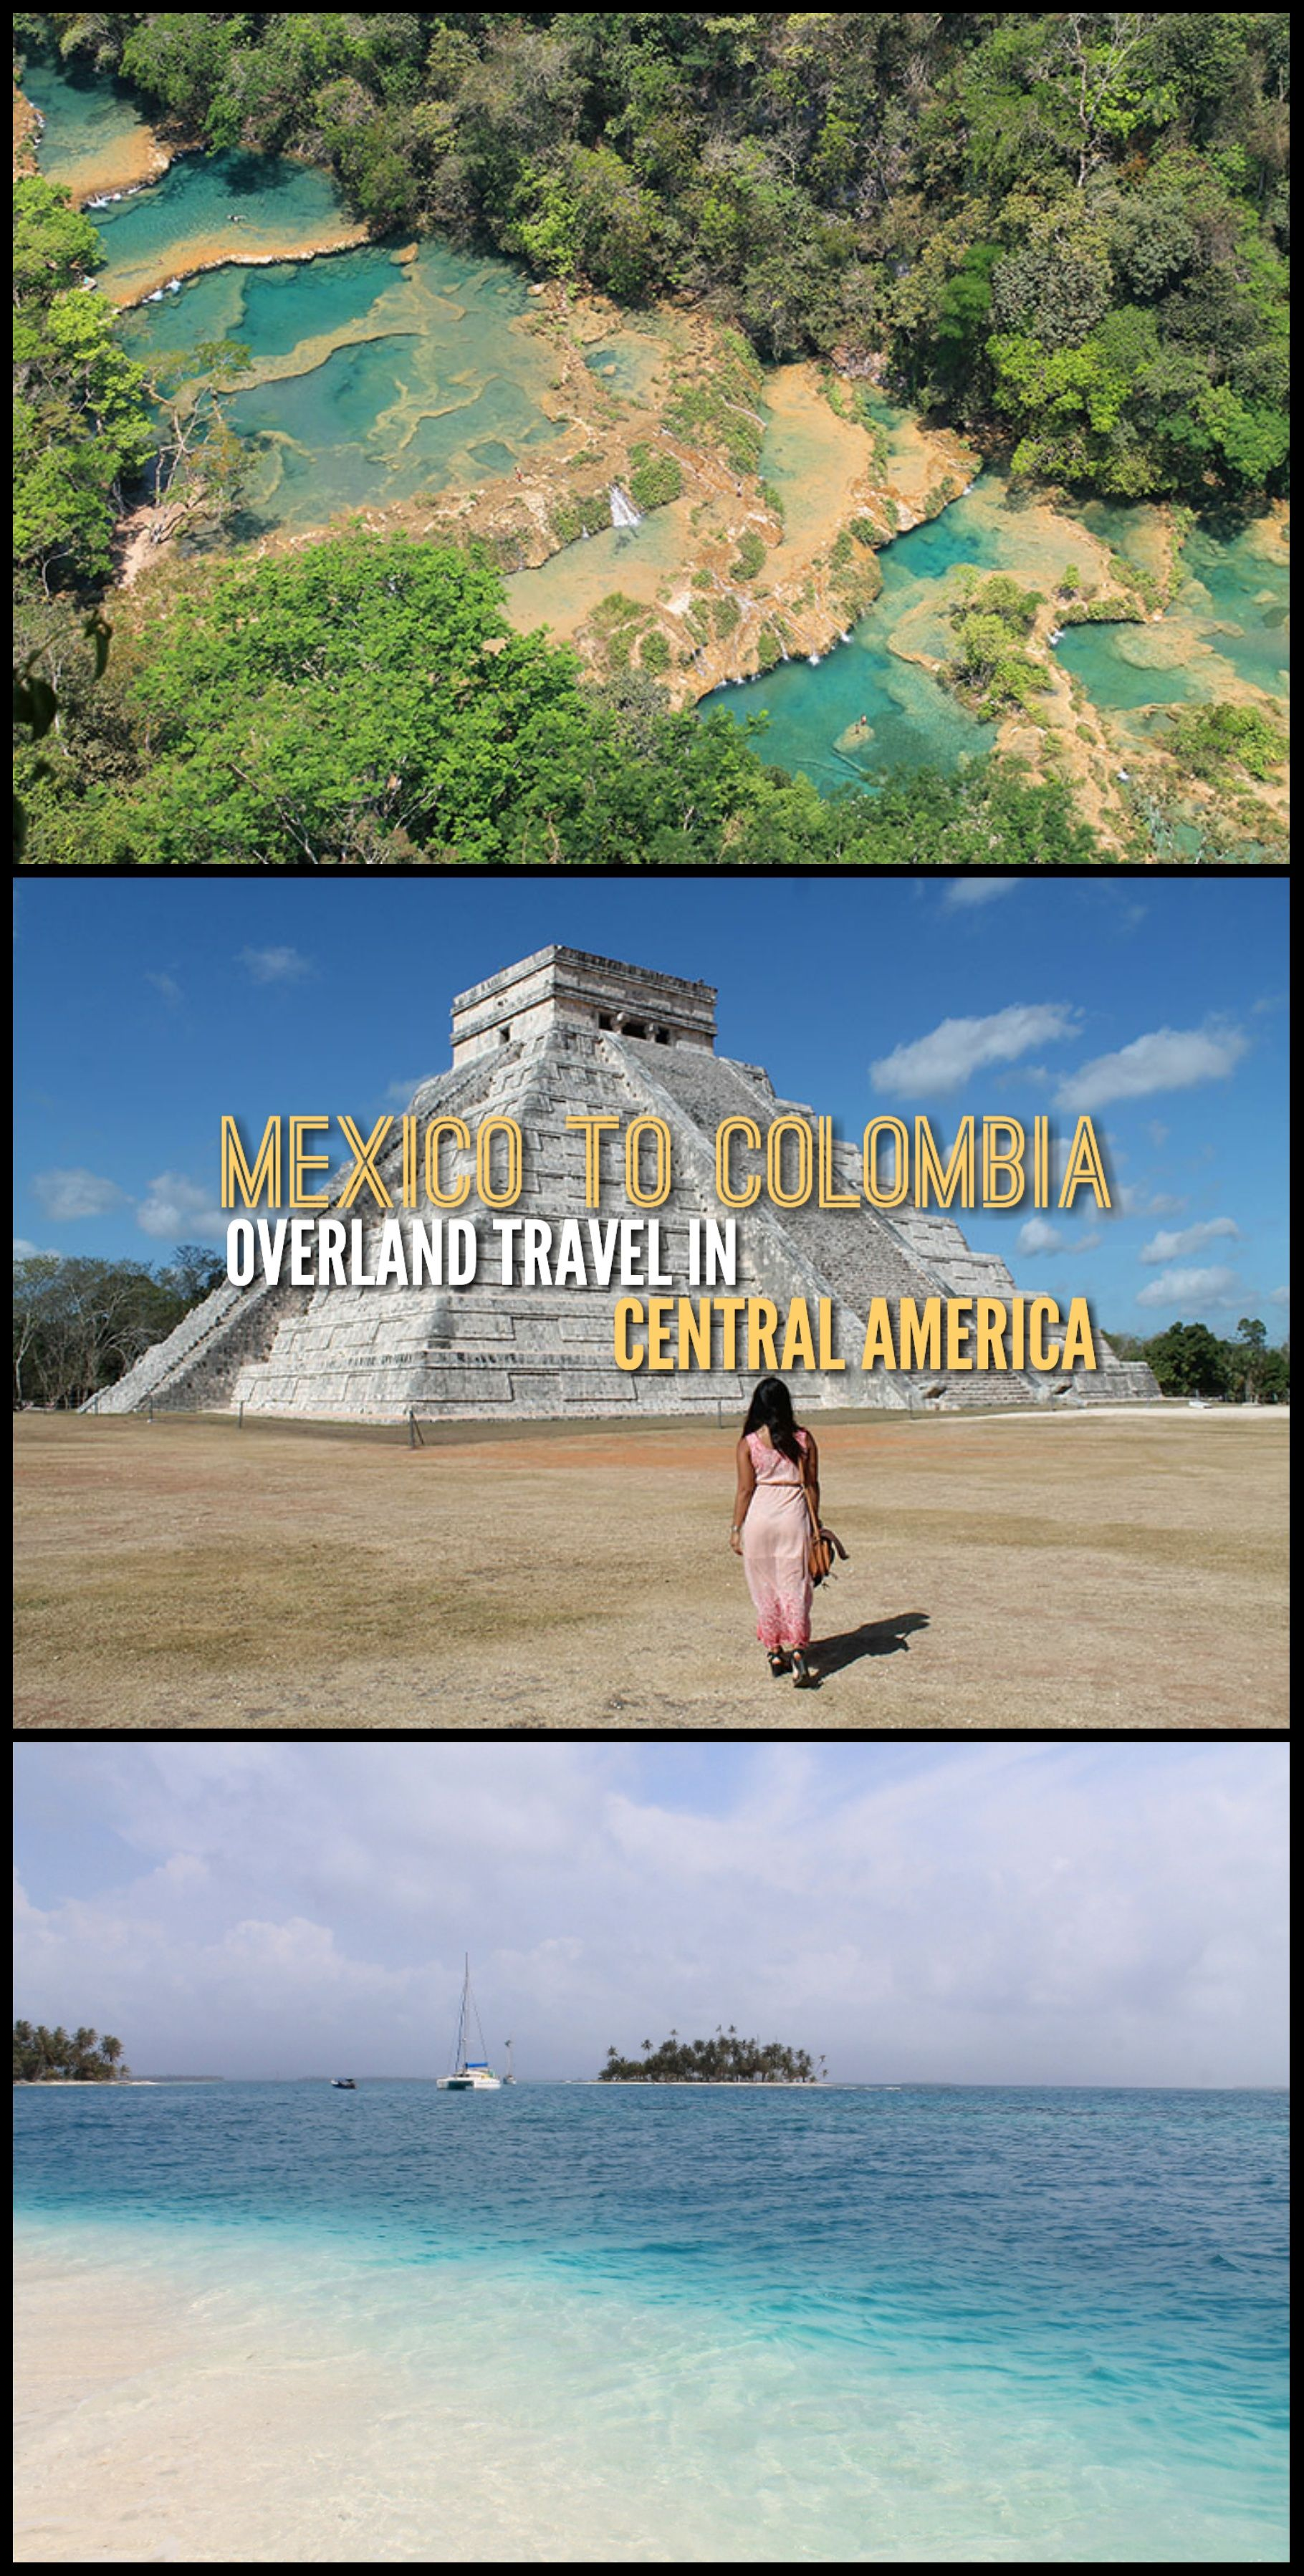 Travelling Overland In Central America From Mexico To Colombia Makes For An Adventurous Journey Ancient Pyramids The Jungles Full Of